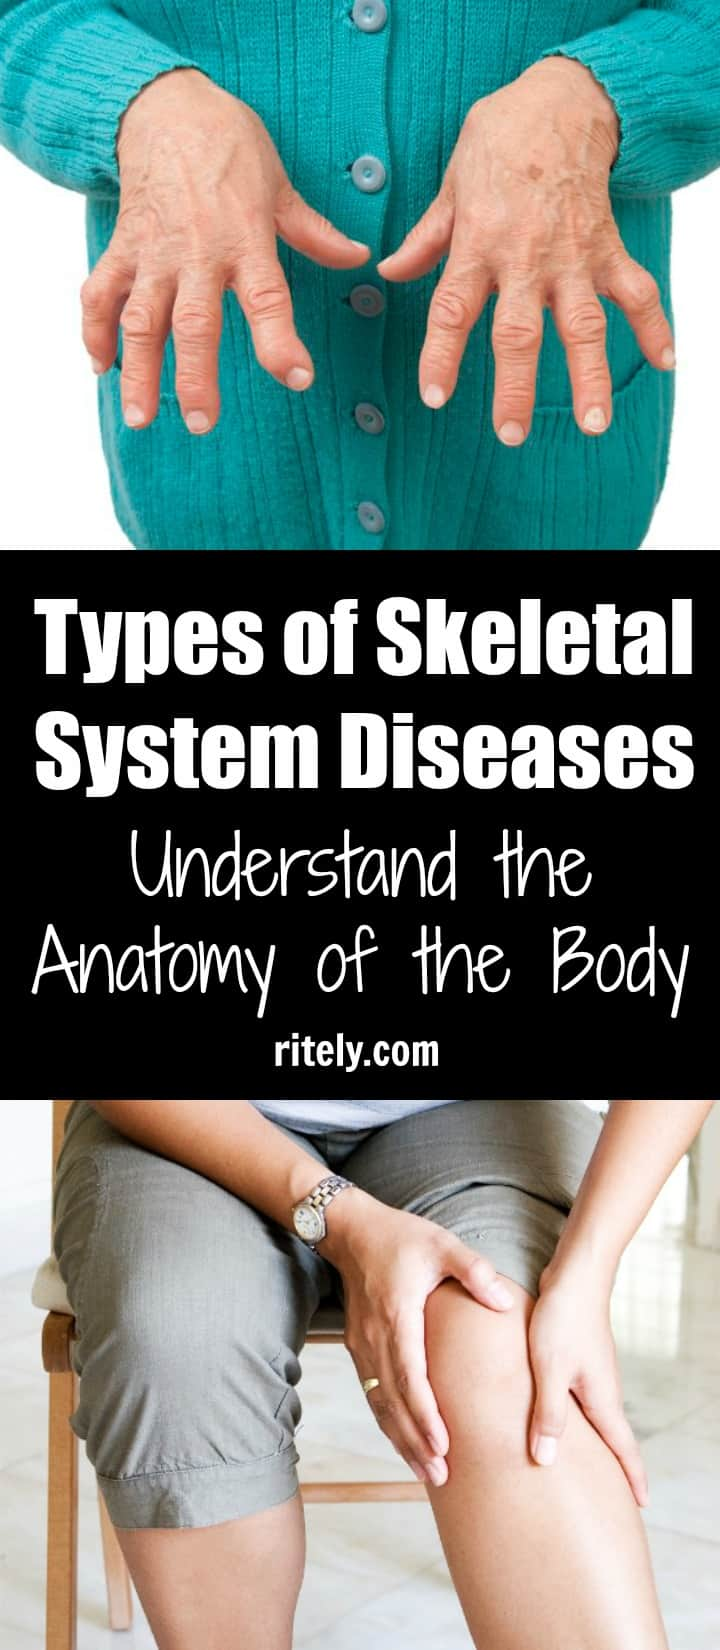 Types of Skeletal System Diseases – Understand the Anatomy of the Body